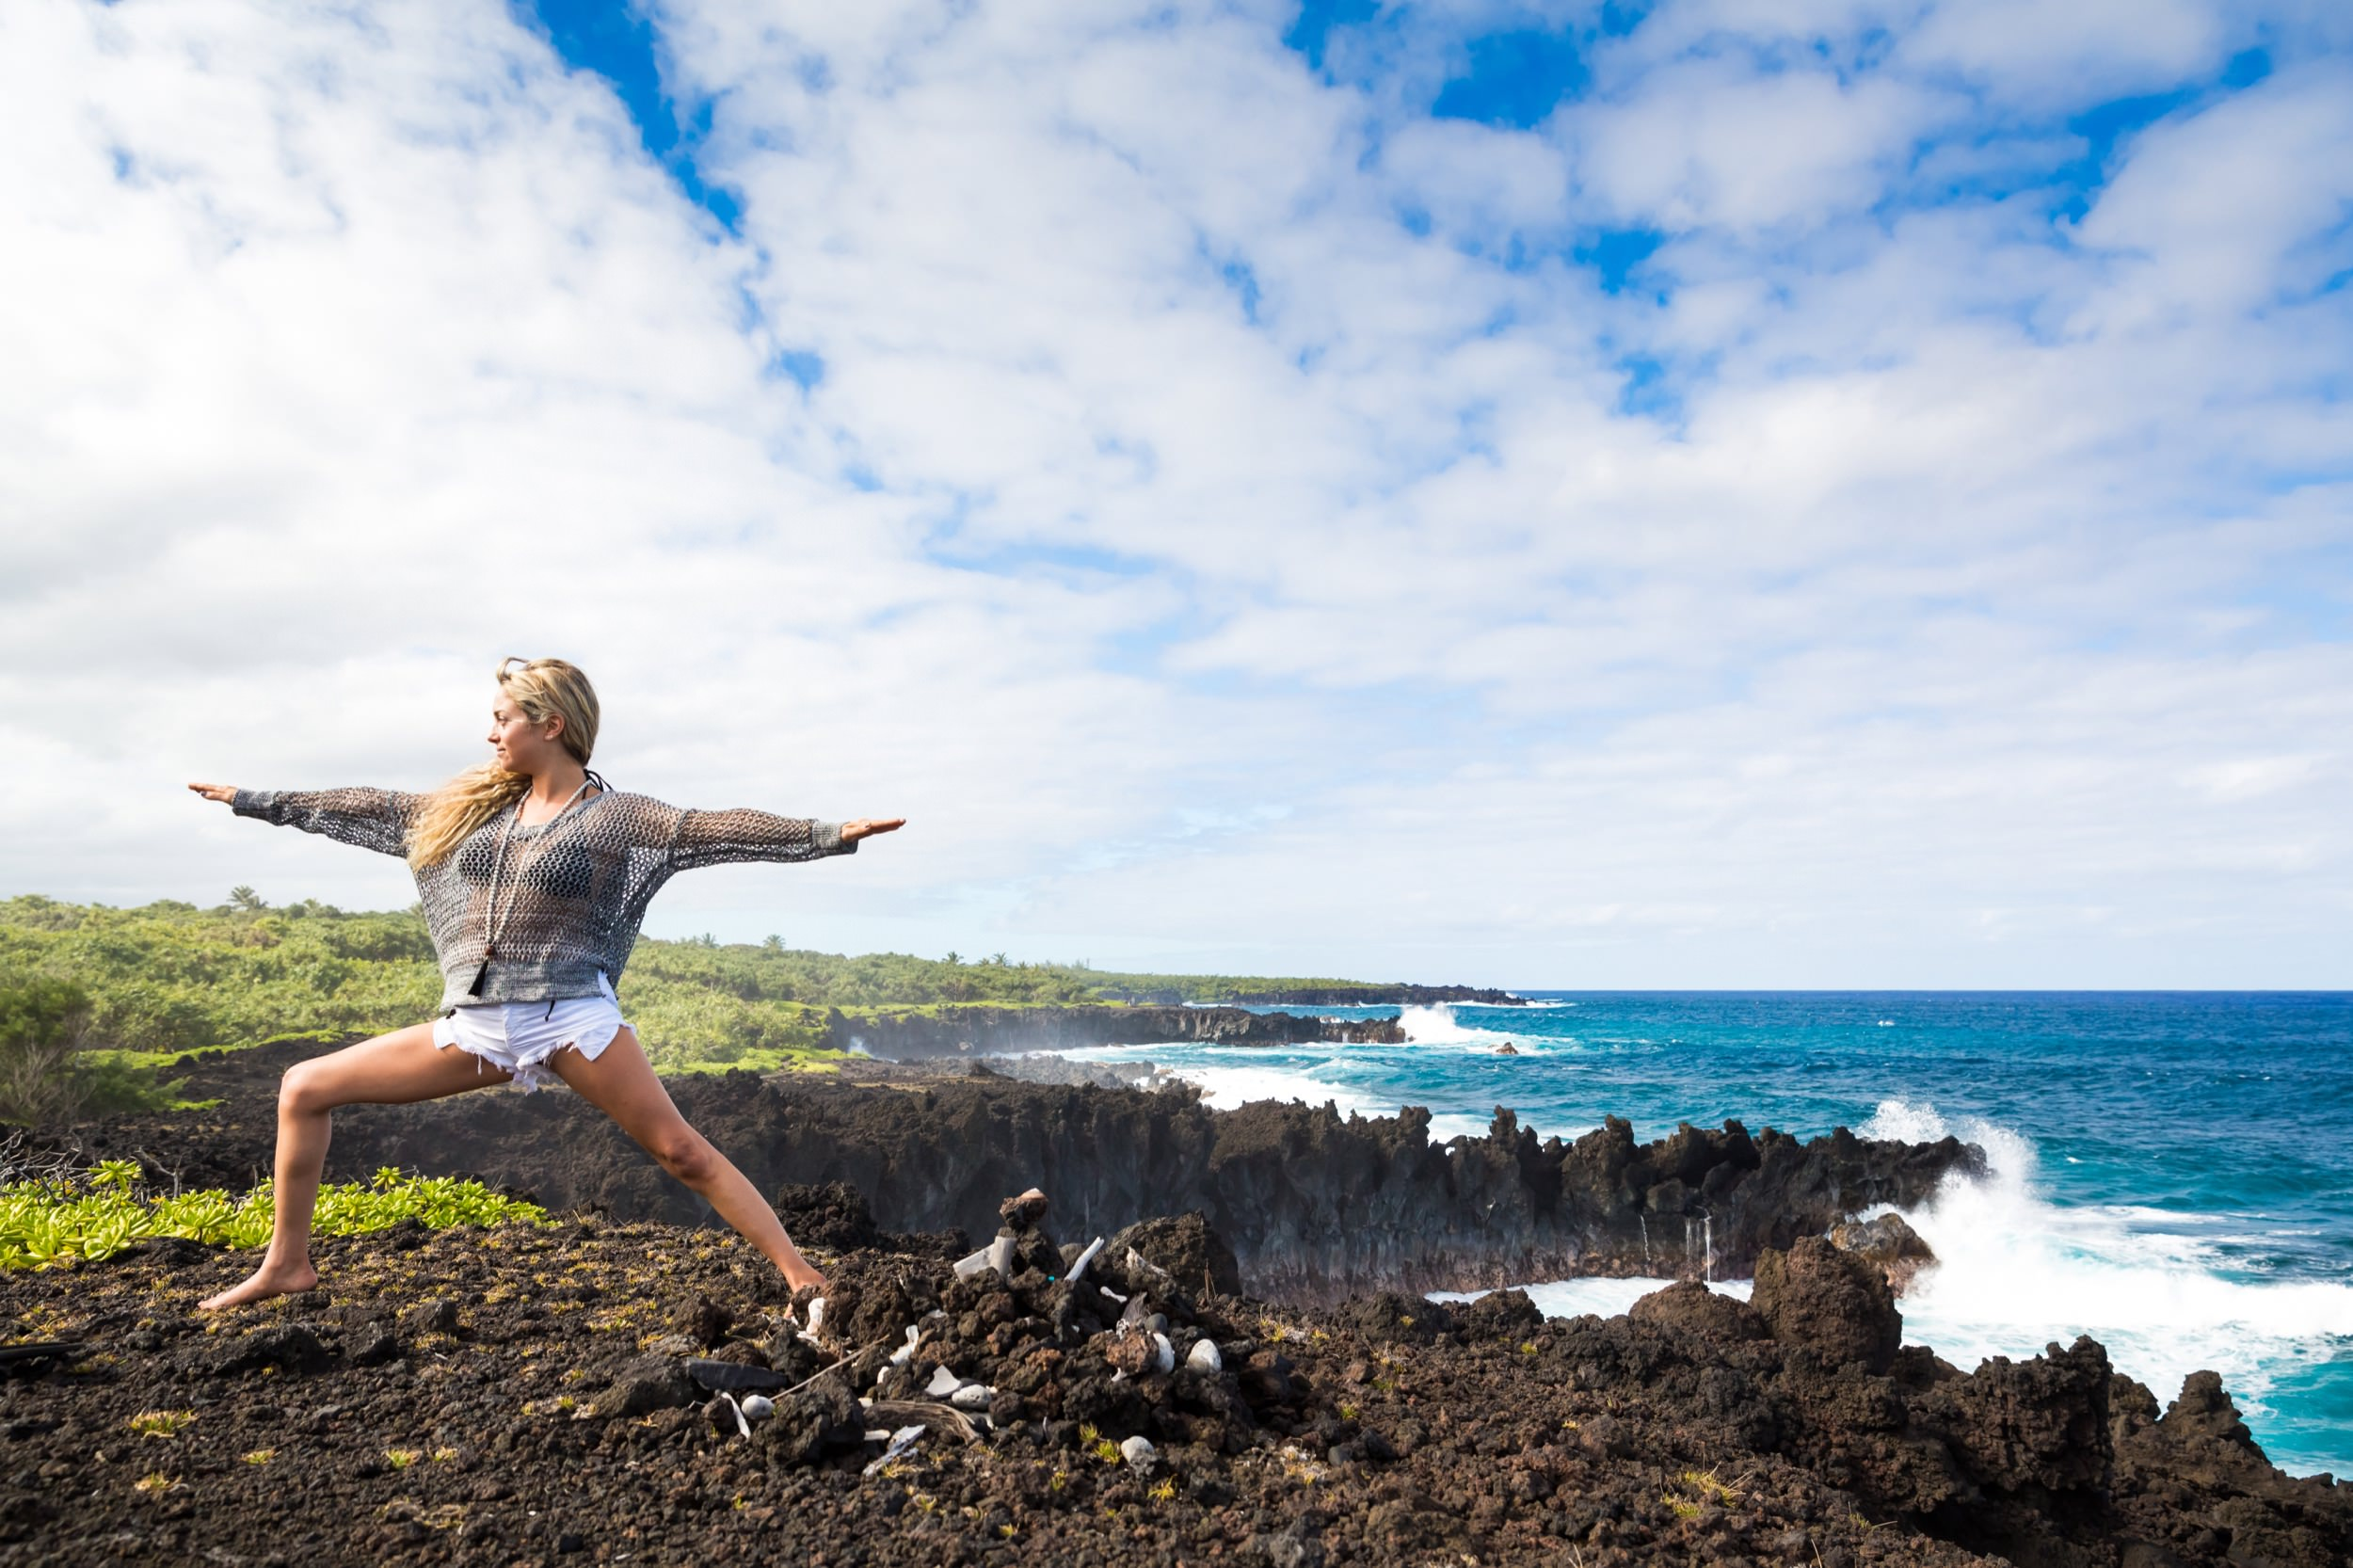 03_031_011015_Hana-Maui-Yoga-Retreat_Nicole-Goddard-Photography_NMG_7182